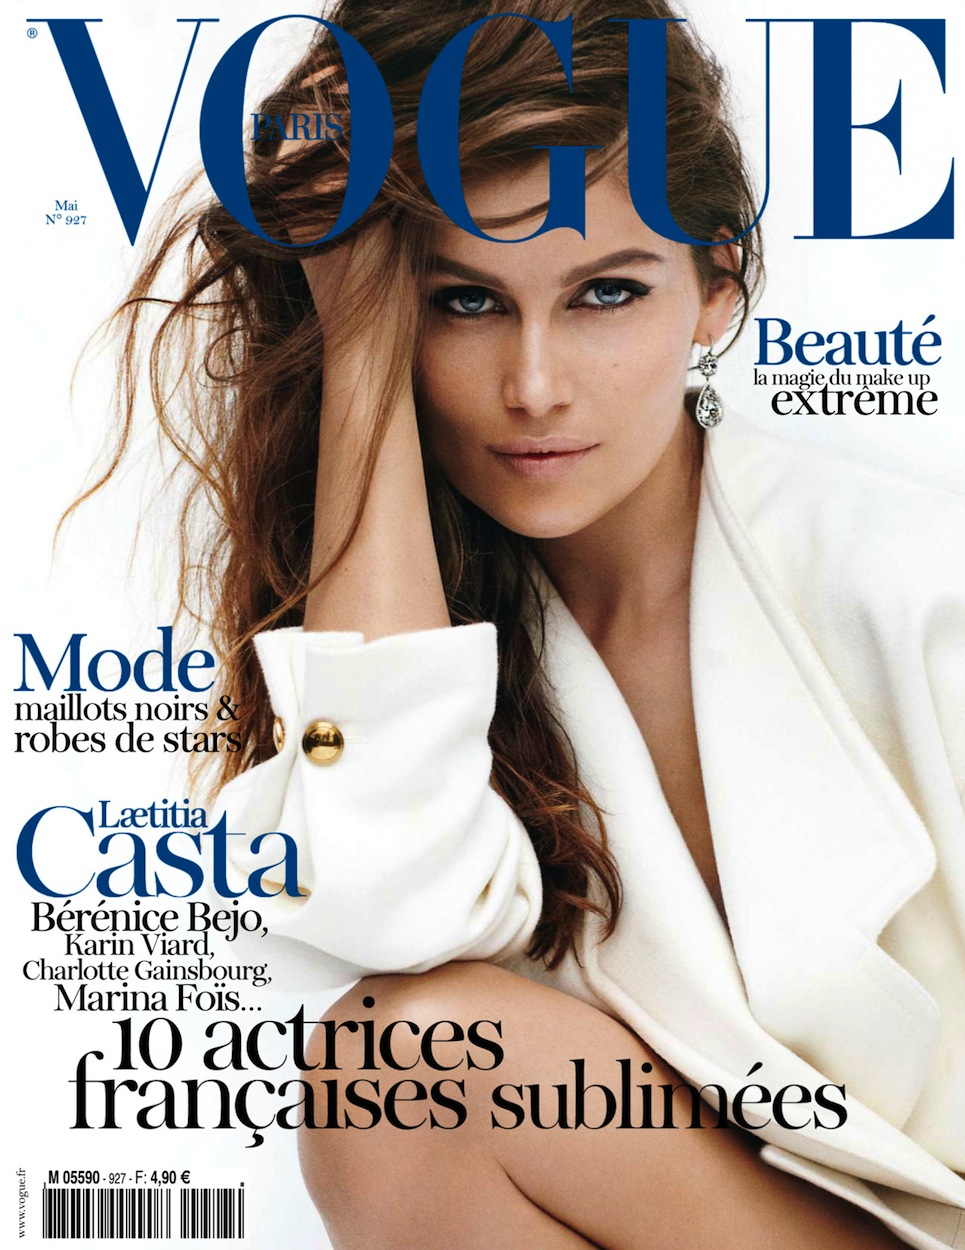 Vogue Paris May 2012: Laetitia Casta by Mario Testino